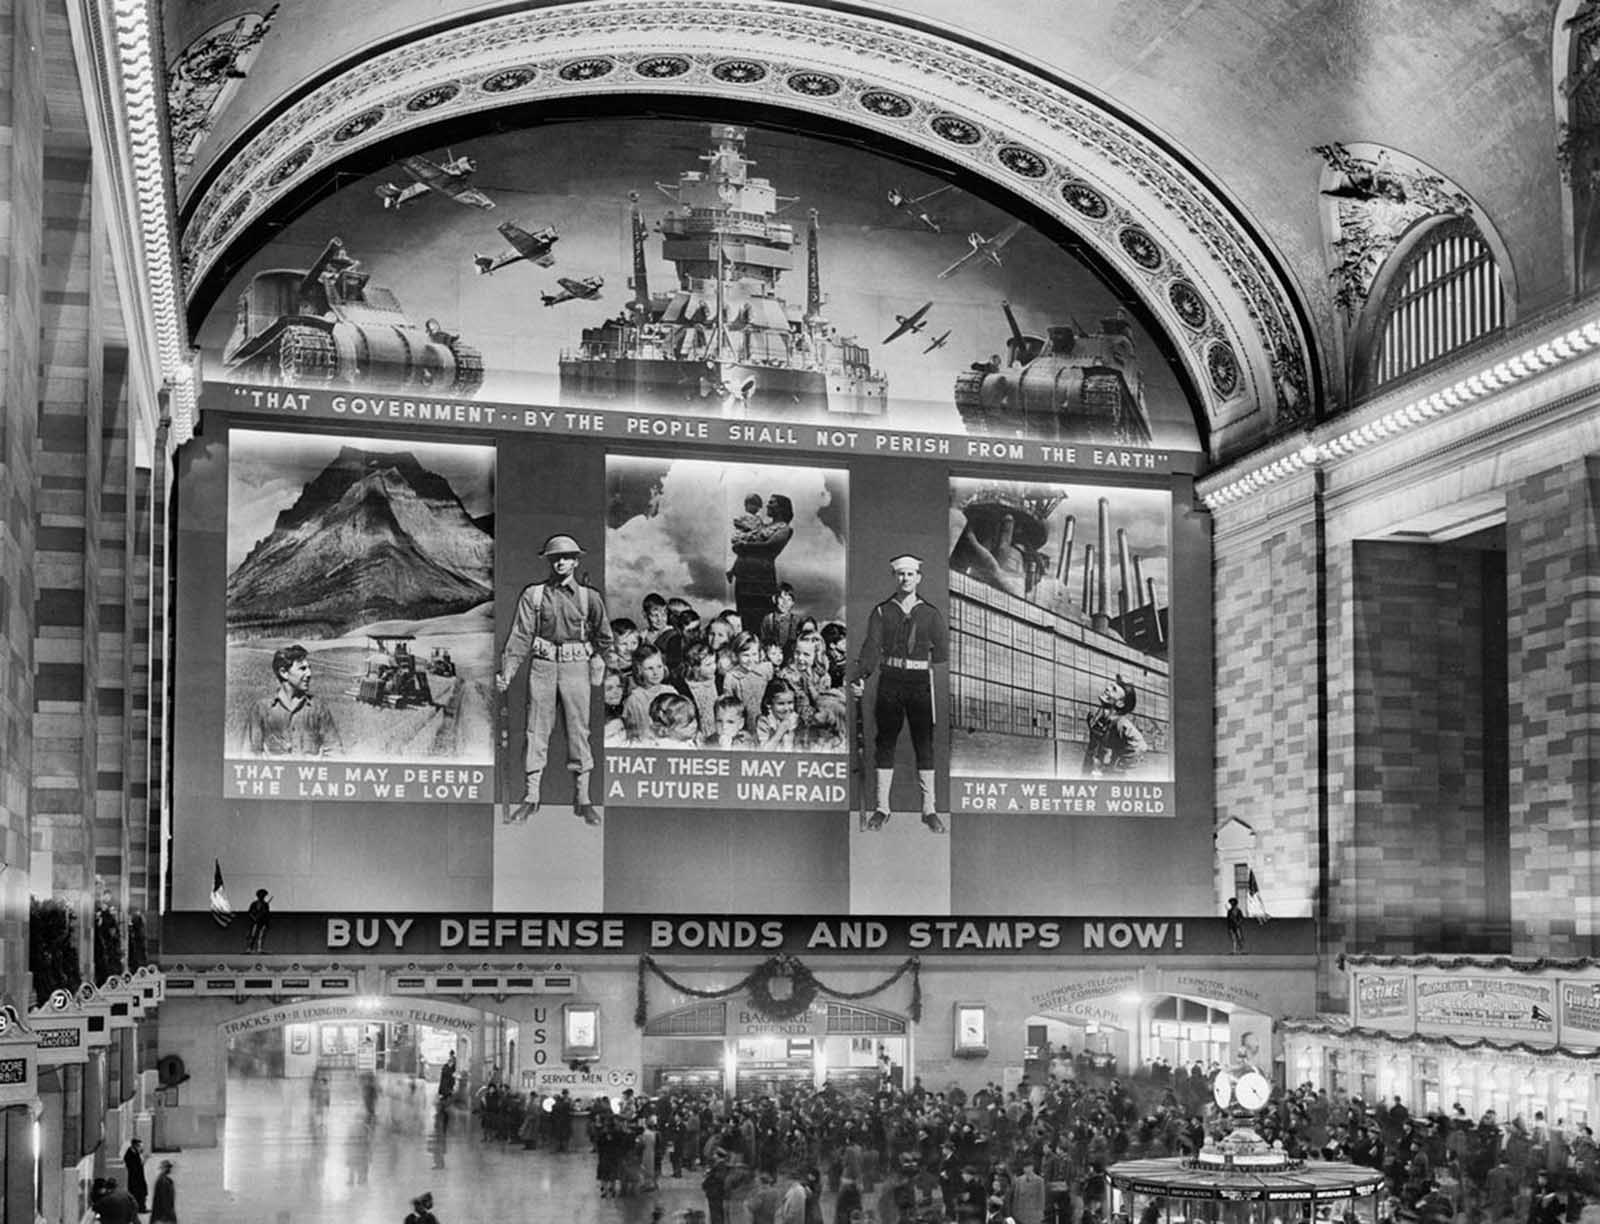 A massive photomural to promote the sale of defense bonds, designed by the Farm Security Administration, in the concourse of Grand Central Terminal, in 1941.